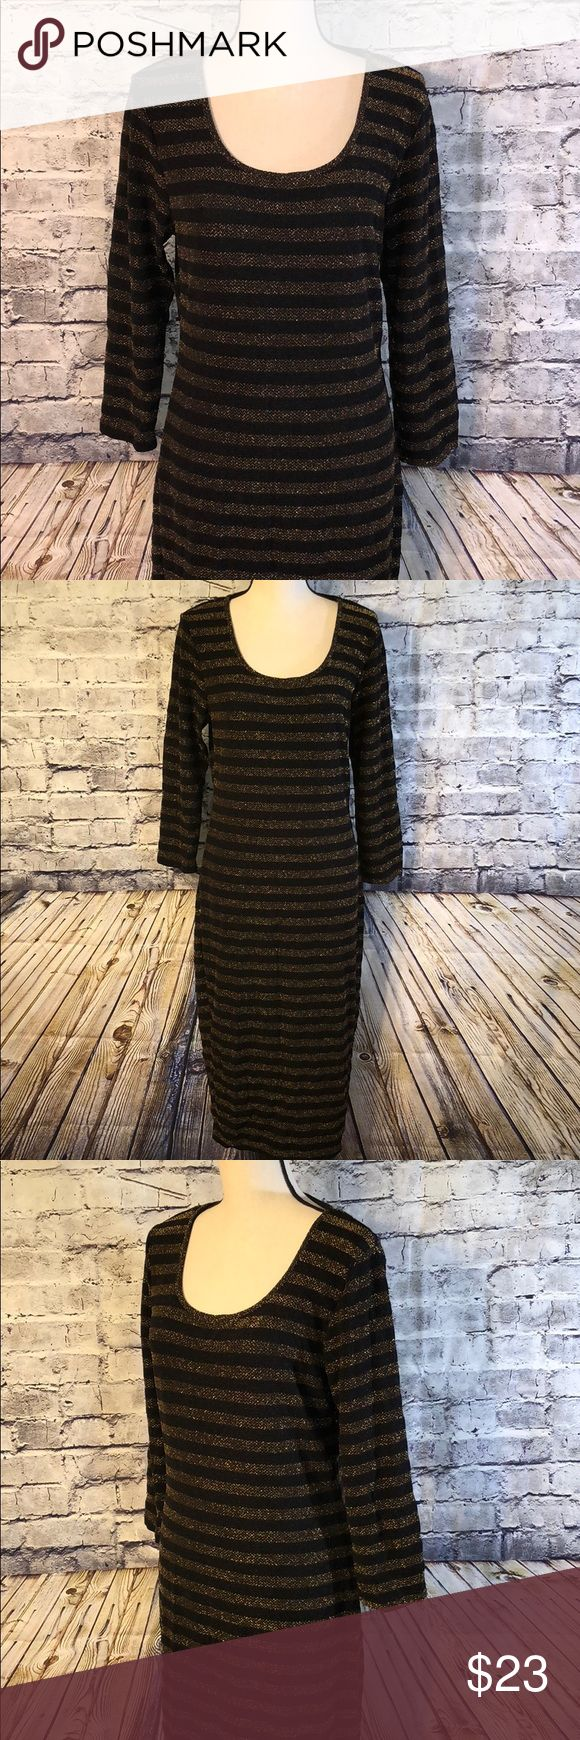 "Symphony Plus maxi dress Super stretchy black and shiny gold stripped maxi dress from Symphony Plus. This dress is stunning to see. The gold shimmers and shines which is hard to capture in pics. This dress is perfect for a girls night out or an evening of dancing 💃!   Approx measurements: Length-46"" Bust- 40"" unstretched.   Thanks for stopping by! Be sure to save $$ by bundling your likes!!  Happy Poshing! 🛒🎁🛍 Symphony Plus Dresses Maxi"